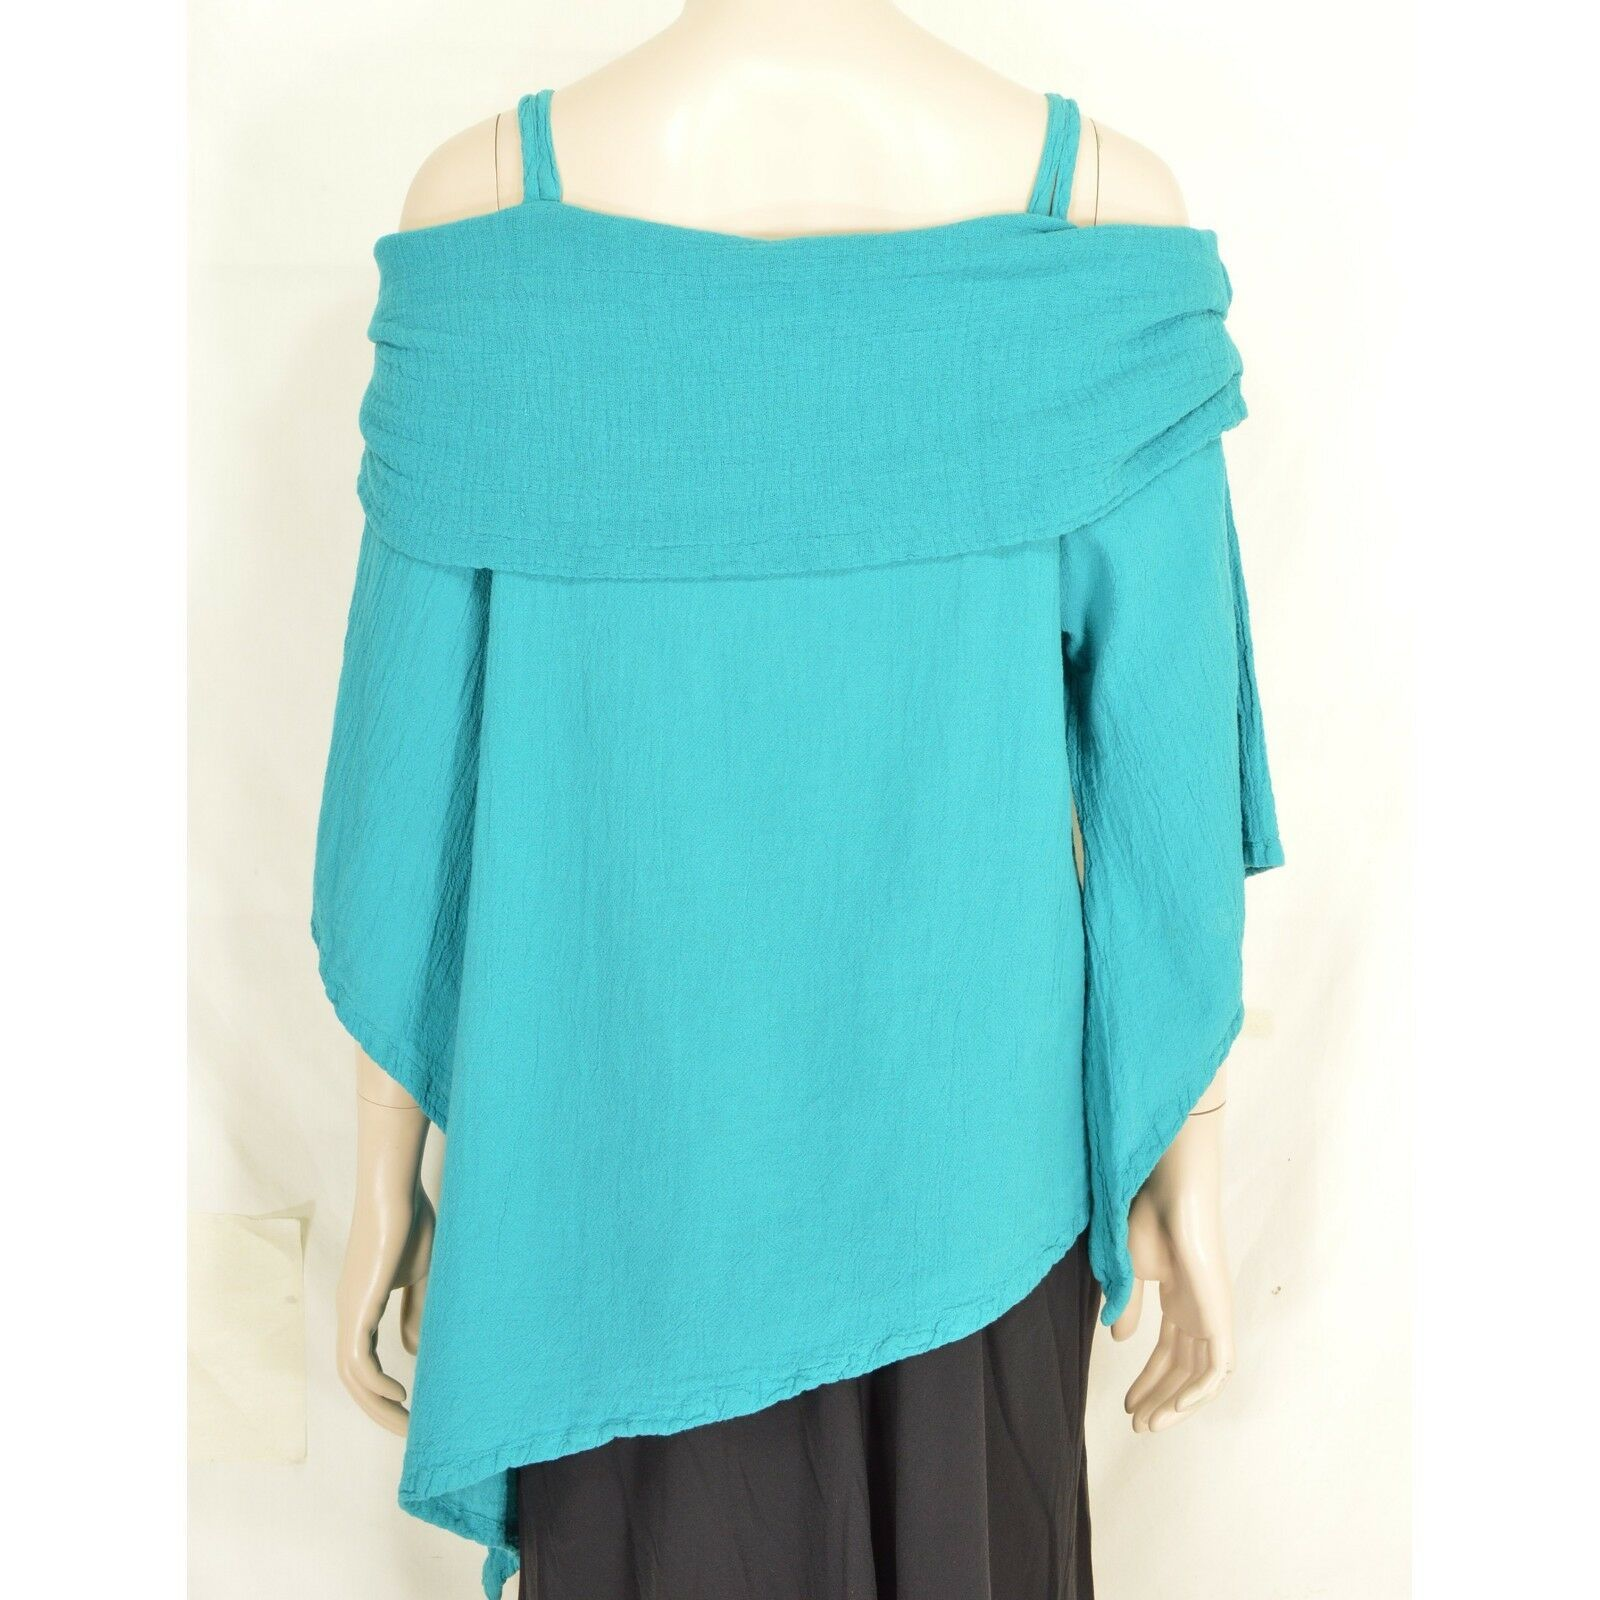 Oh My Gauze top M Pilar turquoise reef bell sleeves cold shoulder asymmetrical